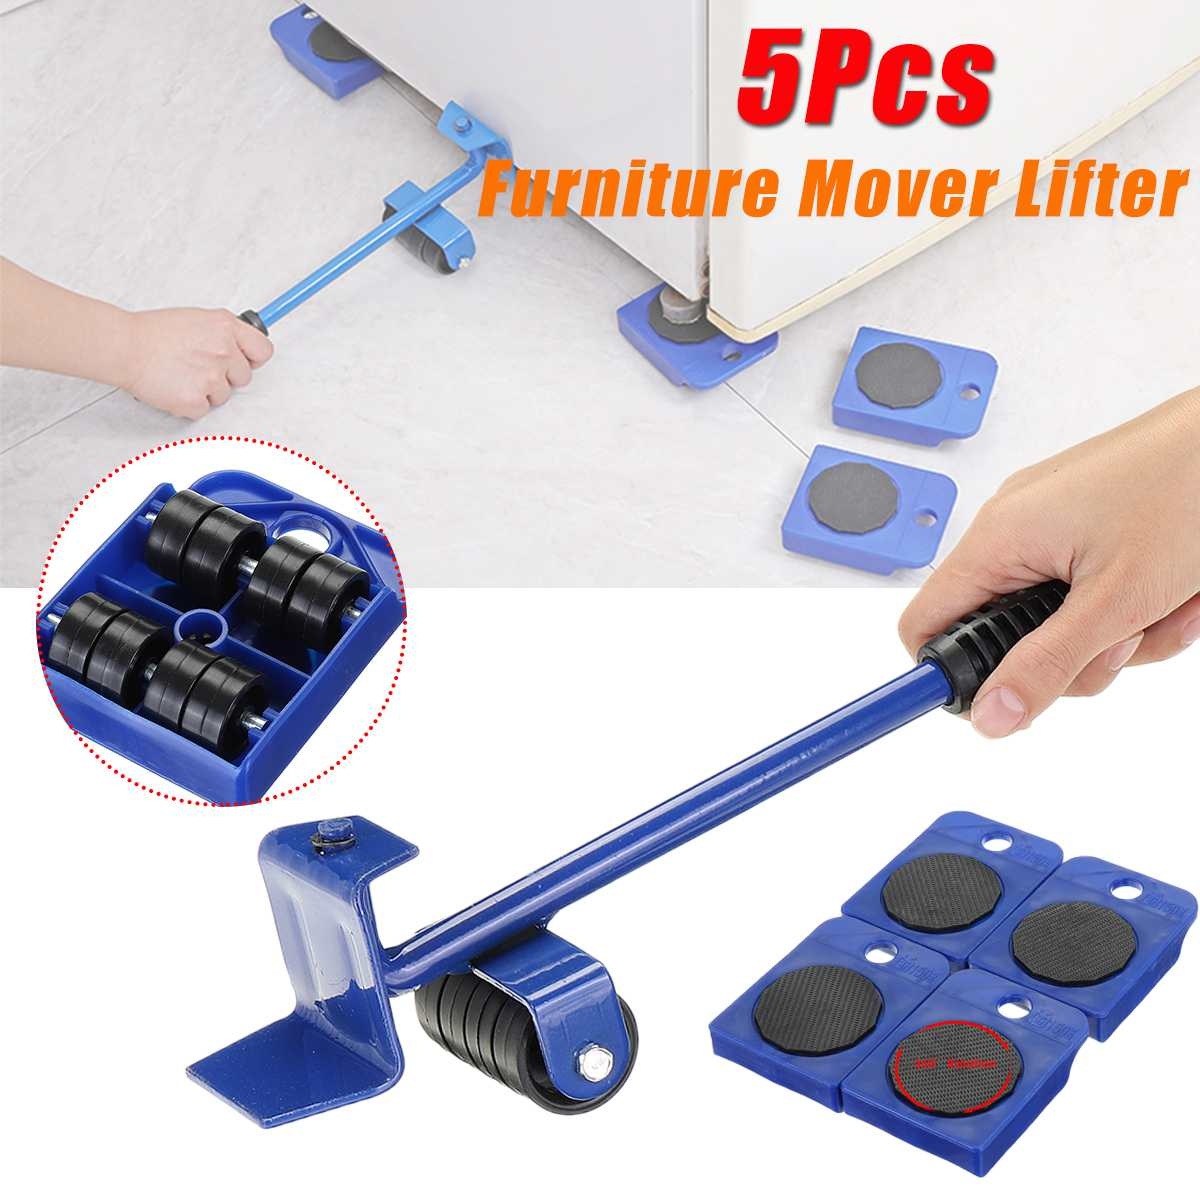 5Pcs/set Iron Furniture Mover Lifter 4 Mover Roller+1 Wheel Bar Rotatable Easy Slides Furniture Transport Lifting Hand Tool Set